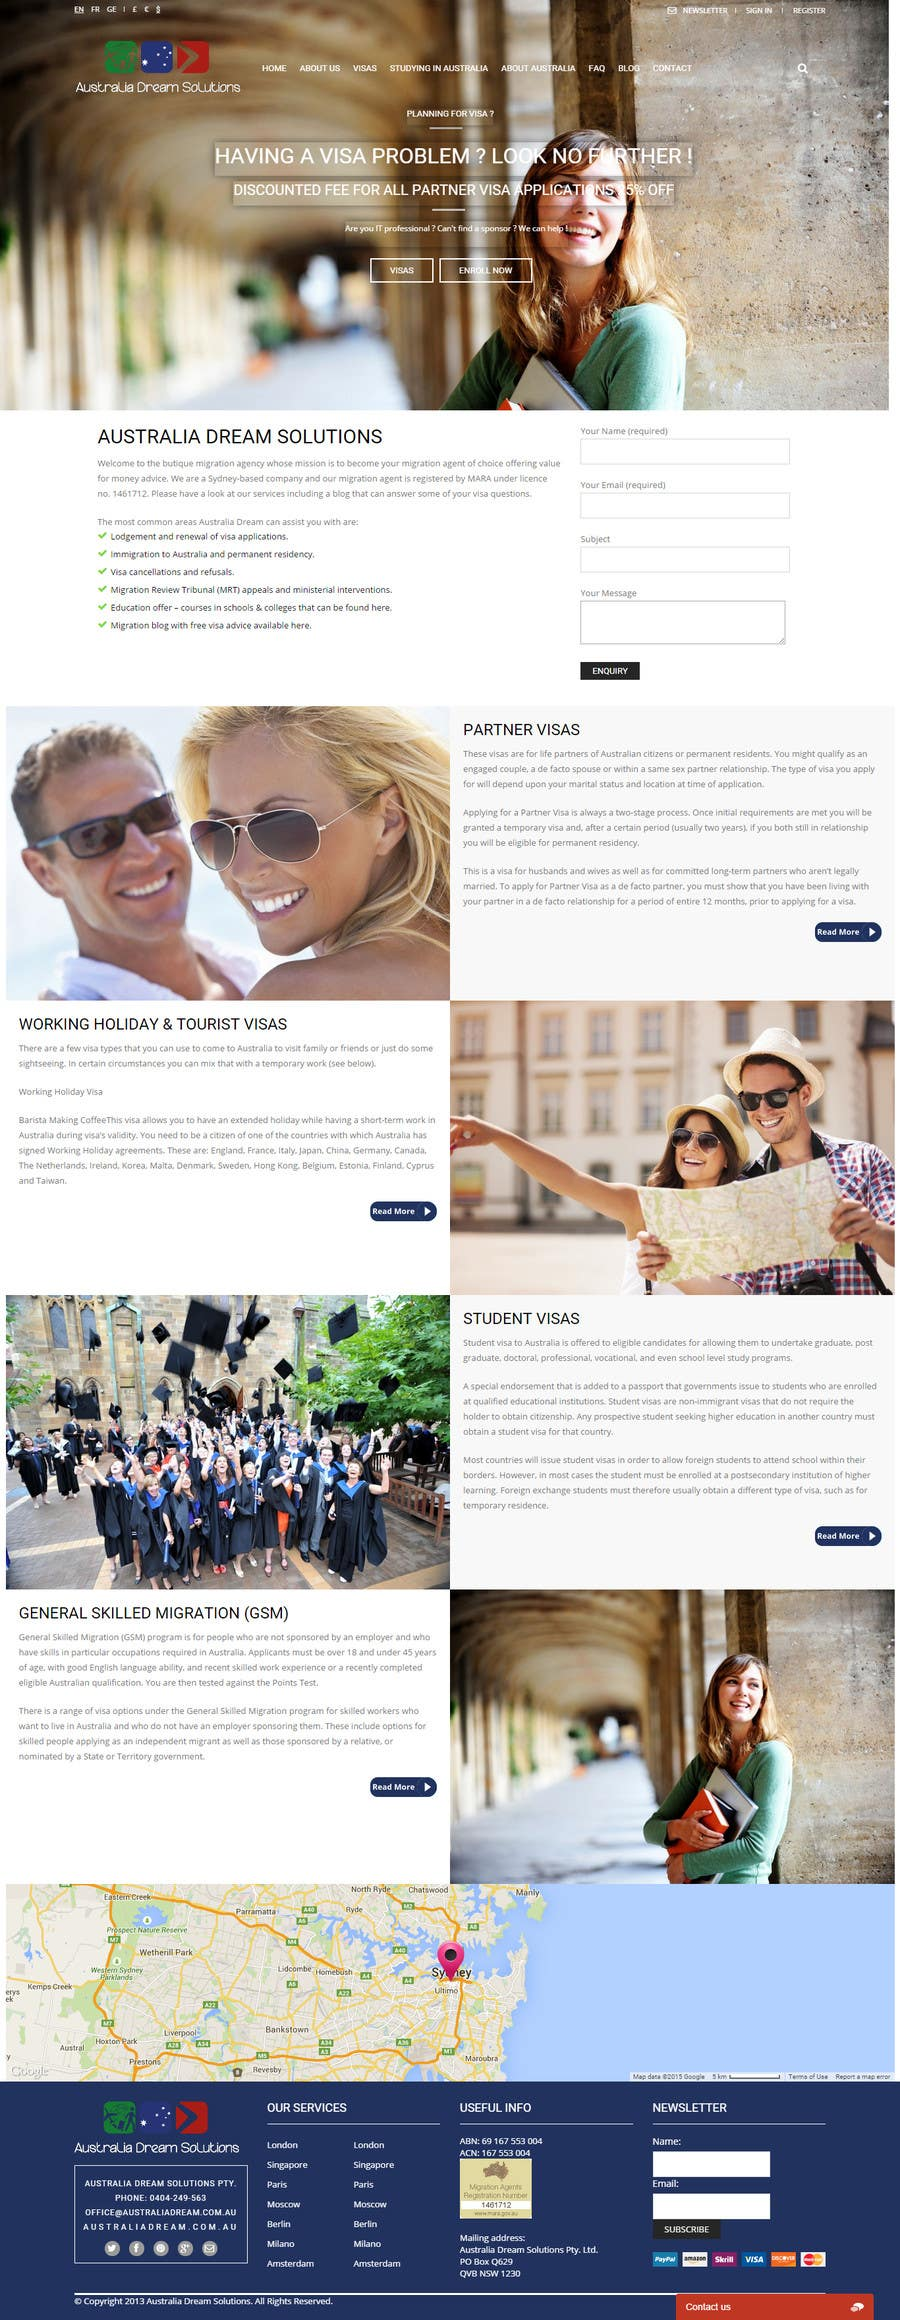 Kilpailutyö #14 kilpailussa Home page redesign by making it sales-focused (legal services).